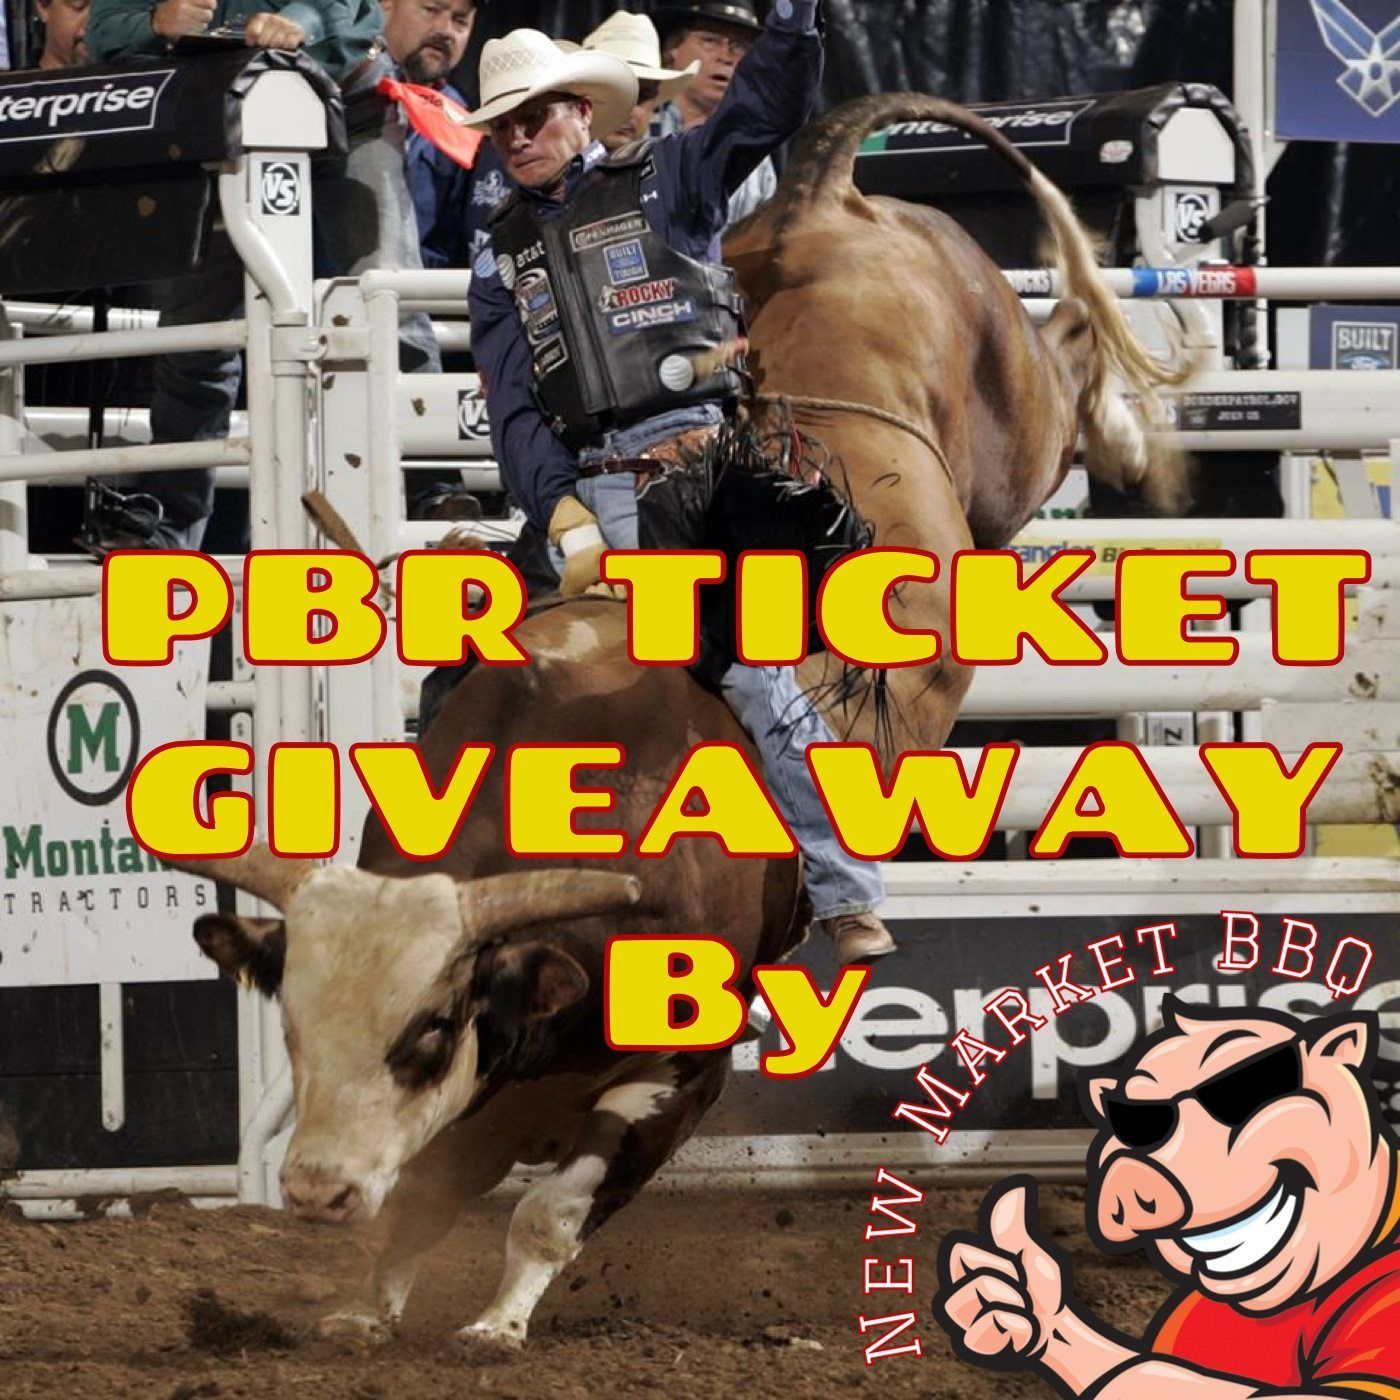 PBR Ticket Giveaway by New Market BBQ